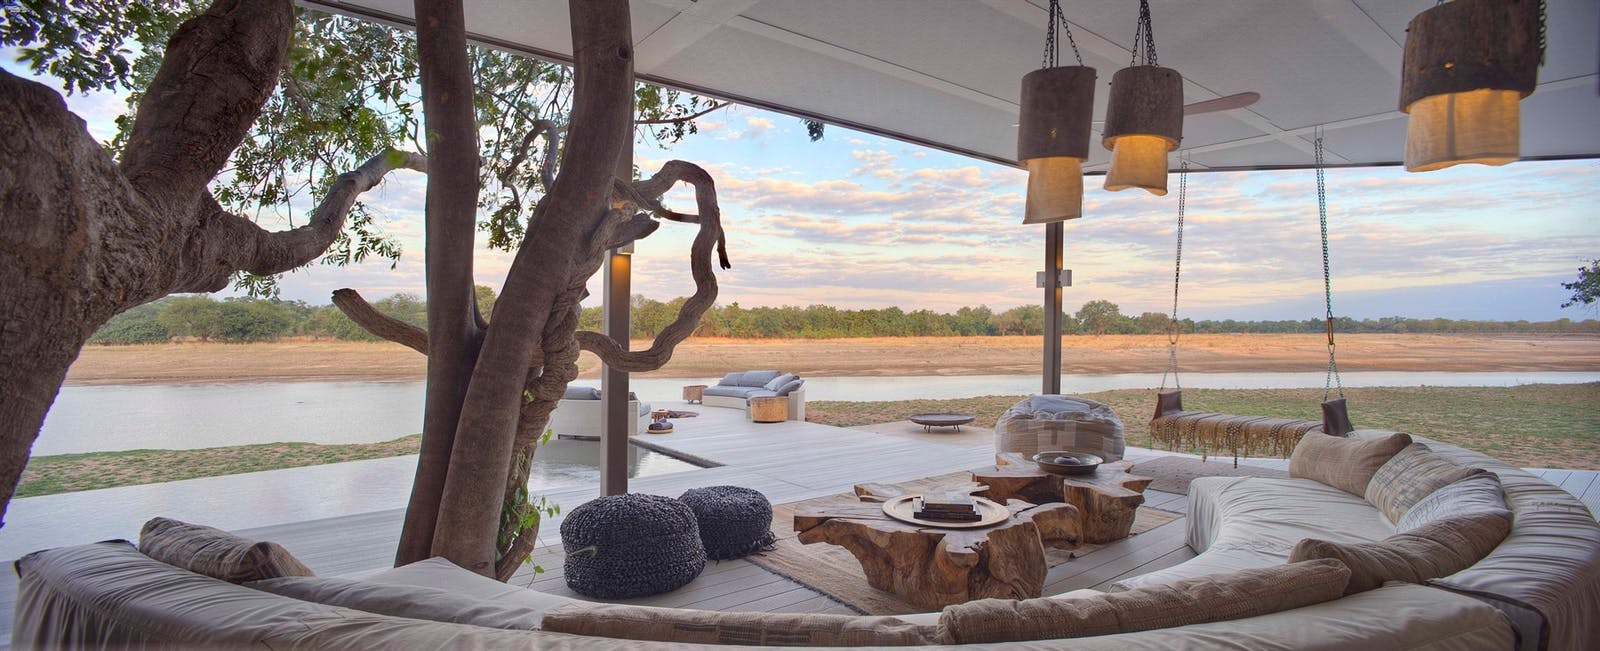 Family Villa at Time + Tide Chinzombo, South Luangwa Safari, Zambia, Africa